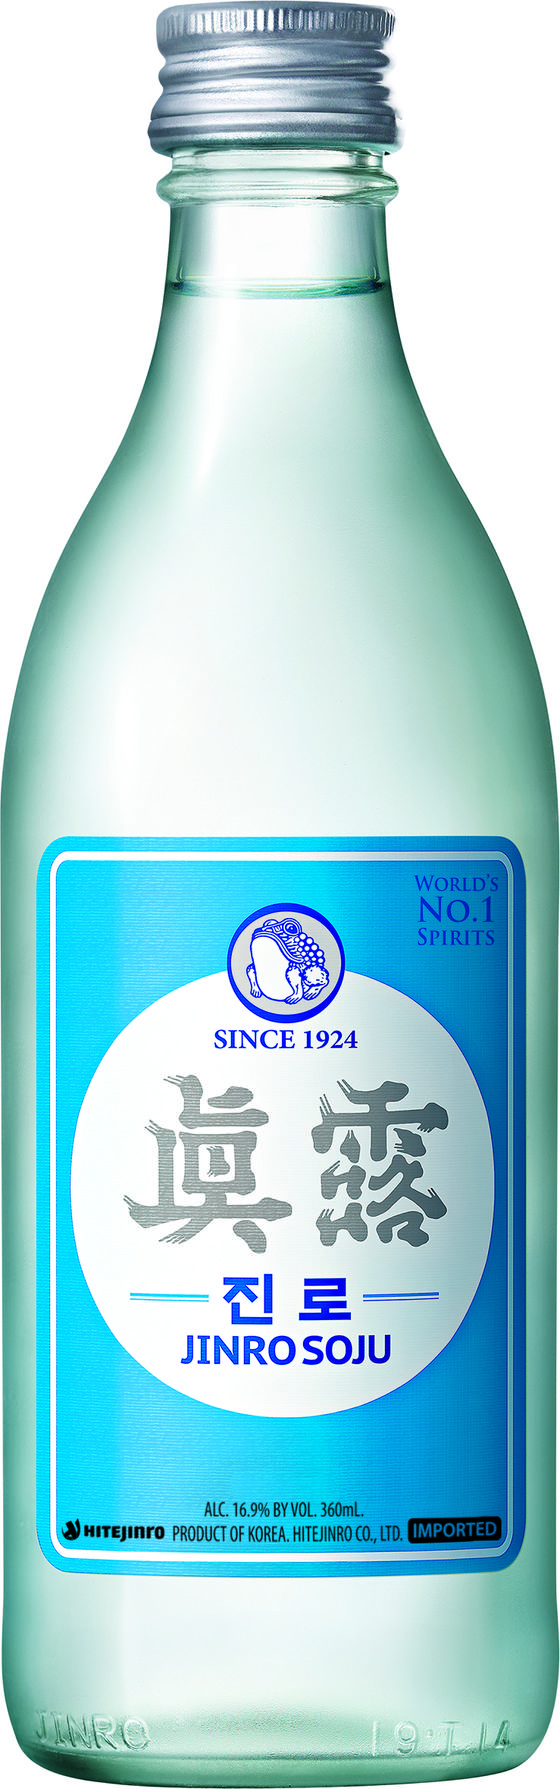 Jinro is Back soju. Hite Jinro is exporting the alcohol drink to seven countries starting this month. [HITE JINRO]